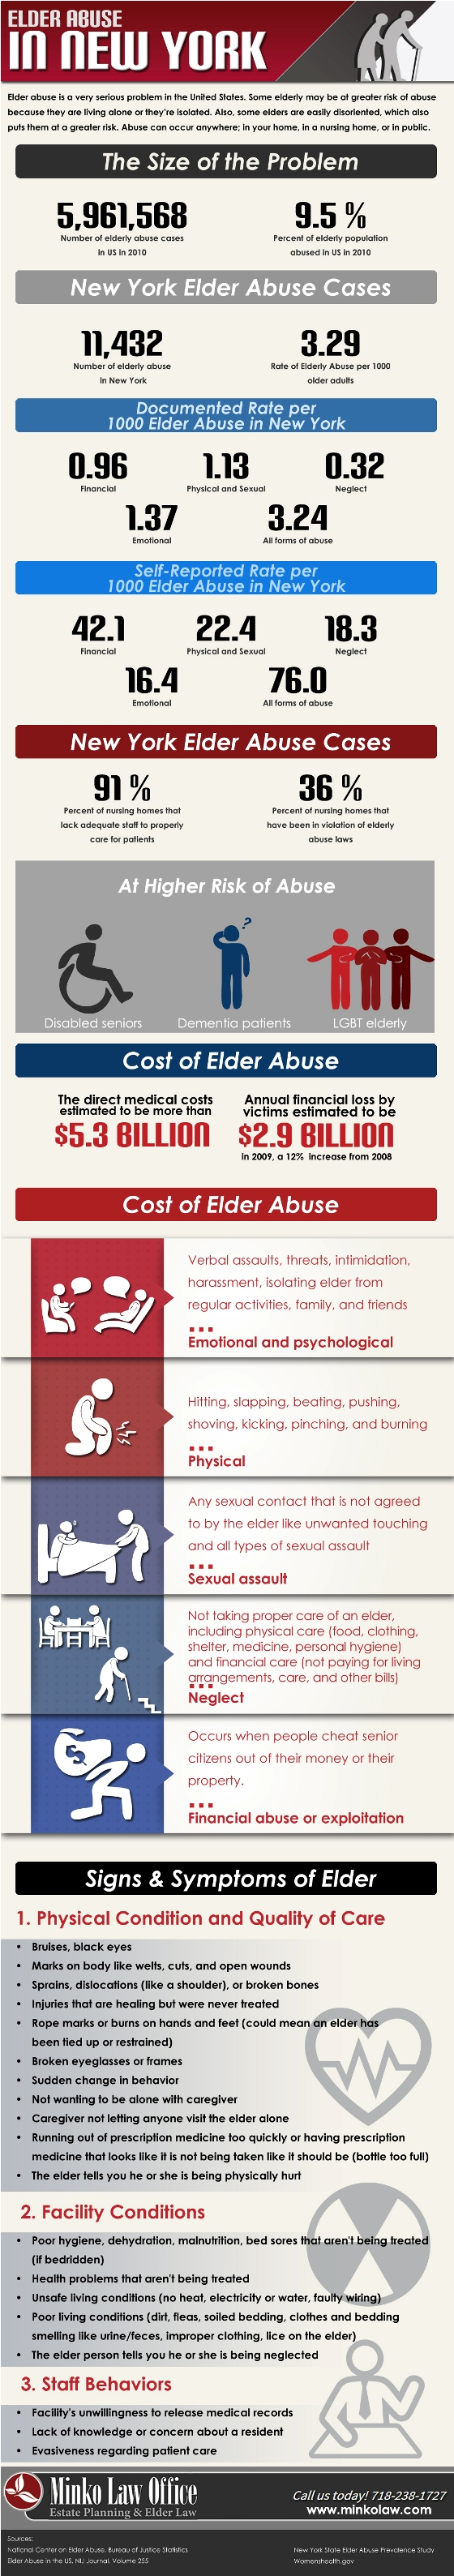 15. Elderly Abuses Cases in NYC